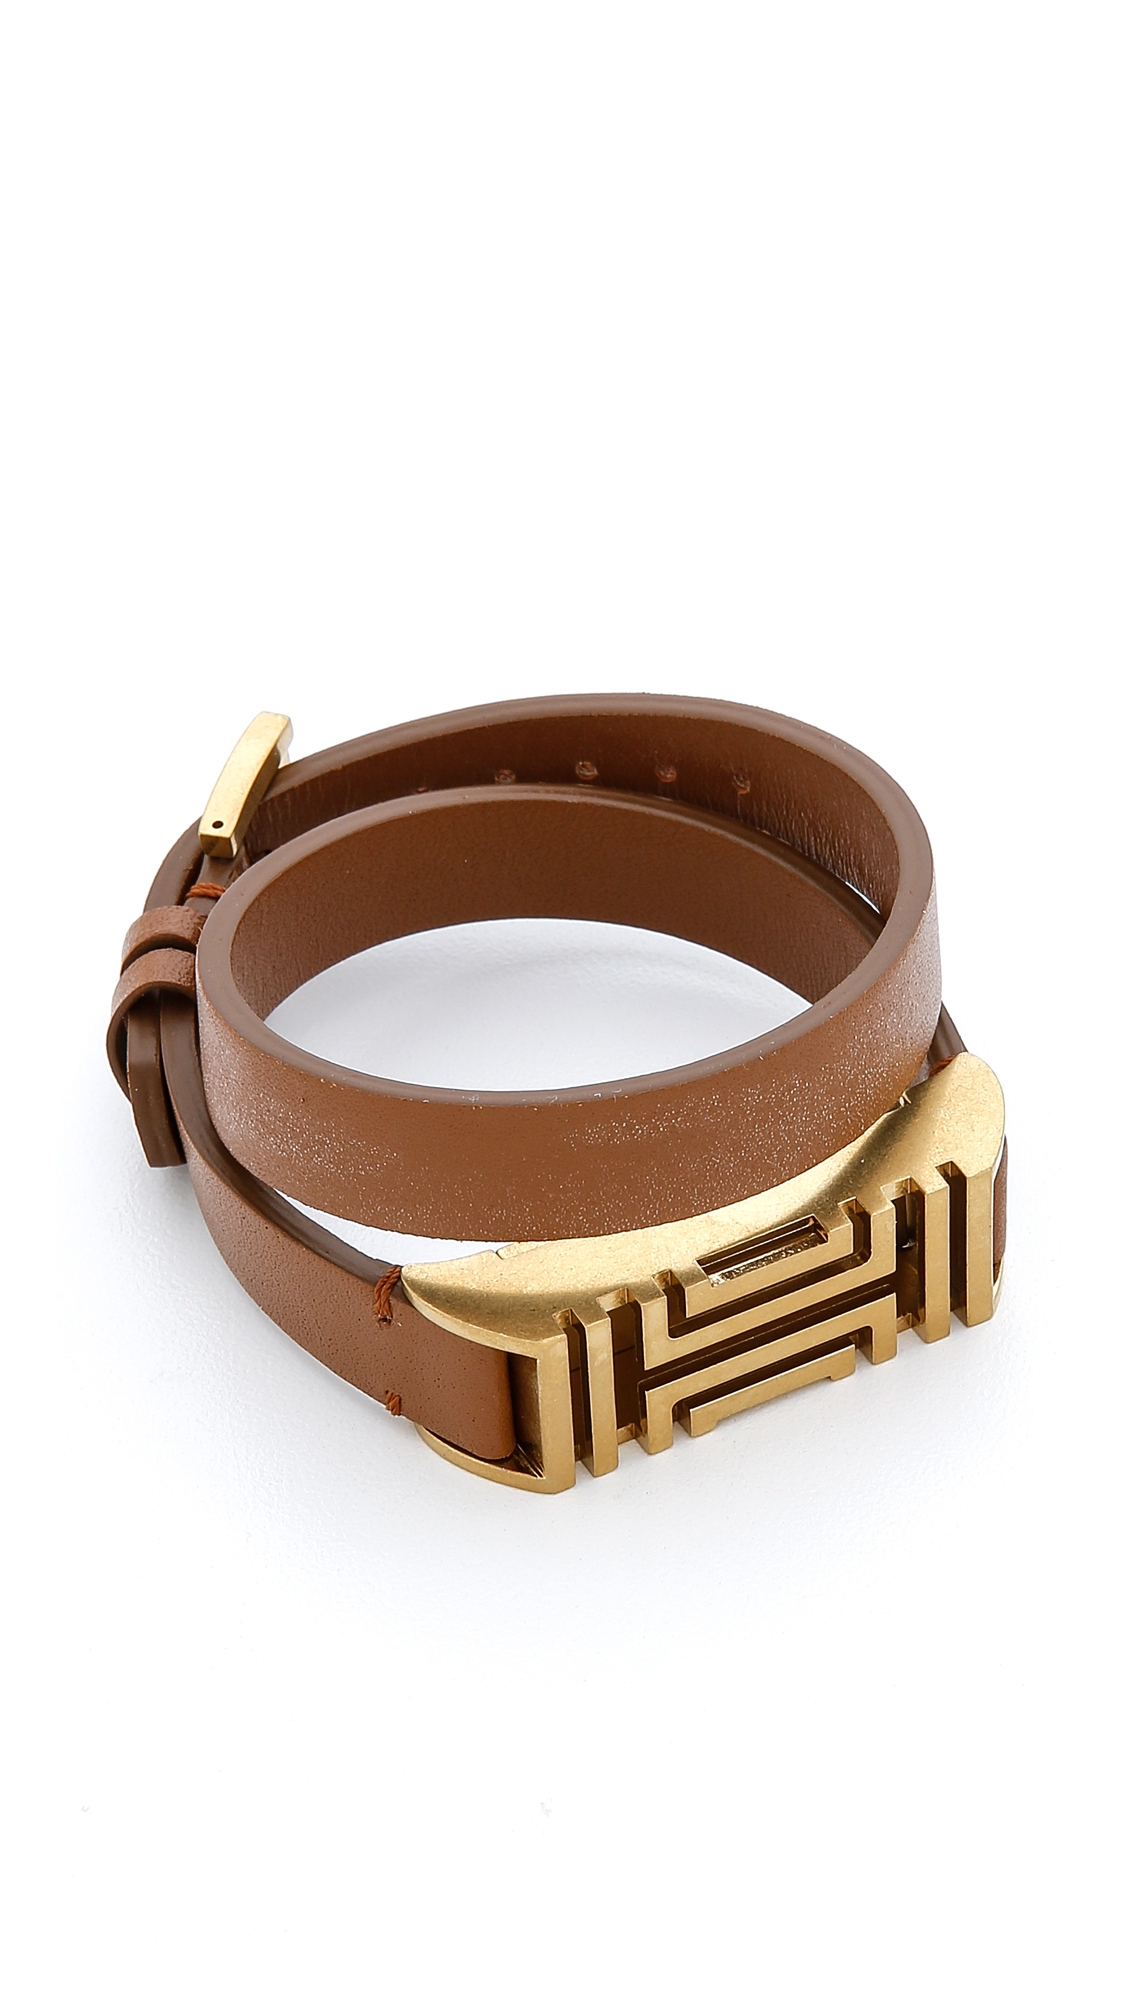 9bcf0acdc74 Lyst - Tory Burch For Fitbit Fret Double Wrap Bracelet - Bark Aged ...